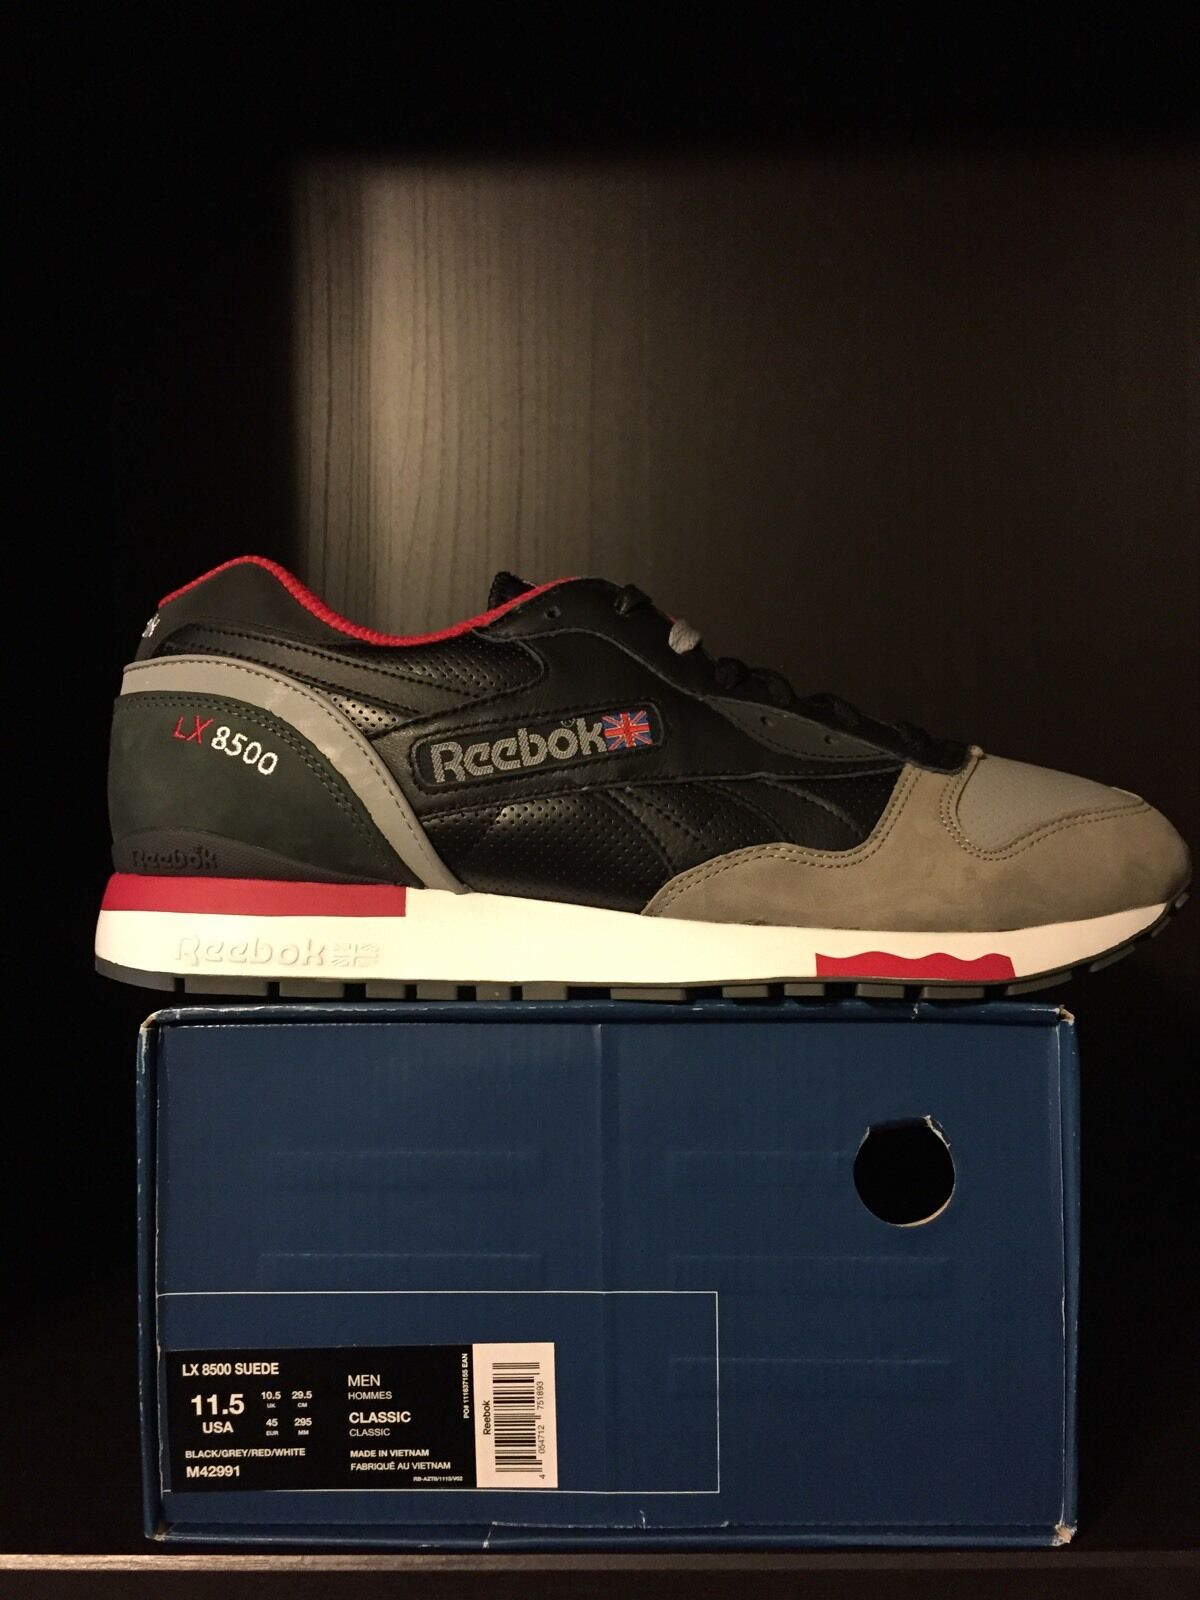 Highs and Lows (HAL) x Reebok LX8500 10th Anniversary - Size 11.5